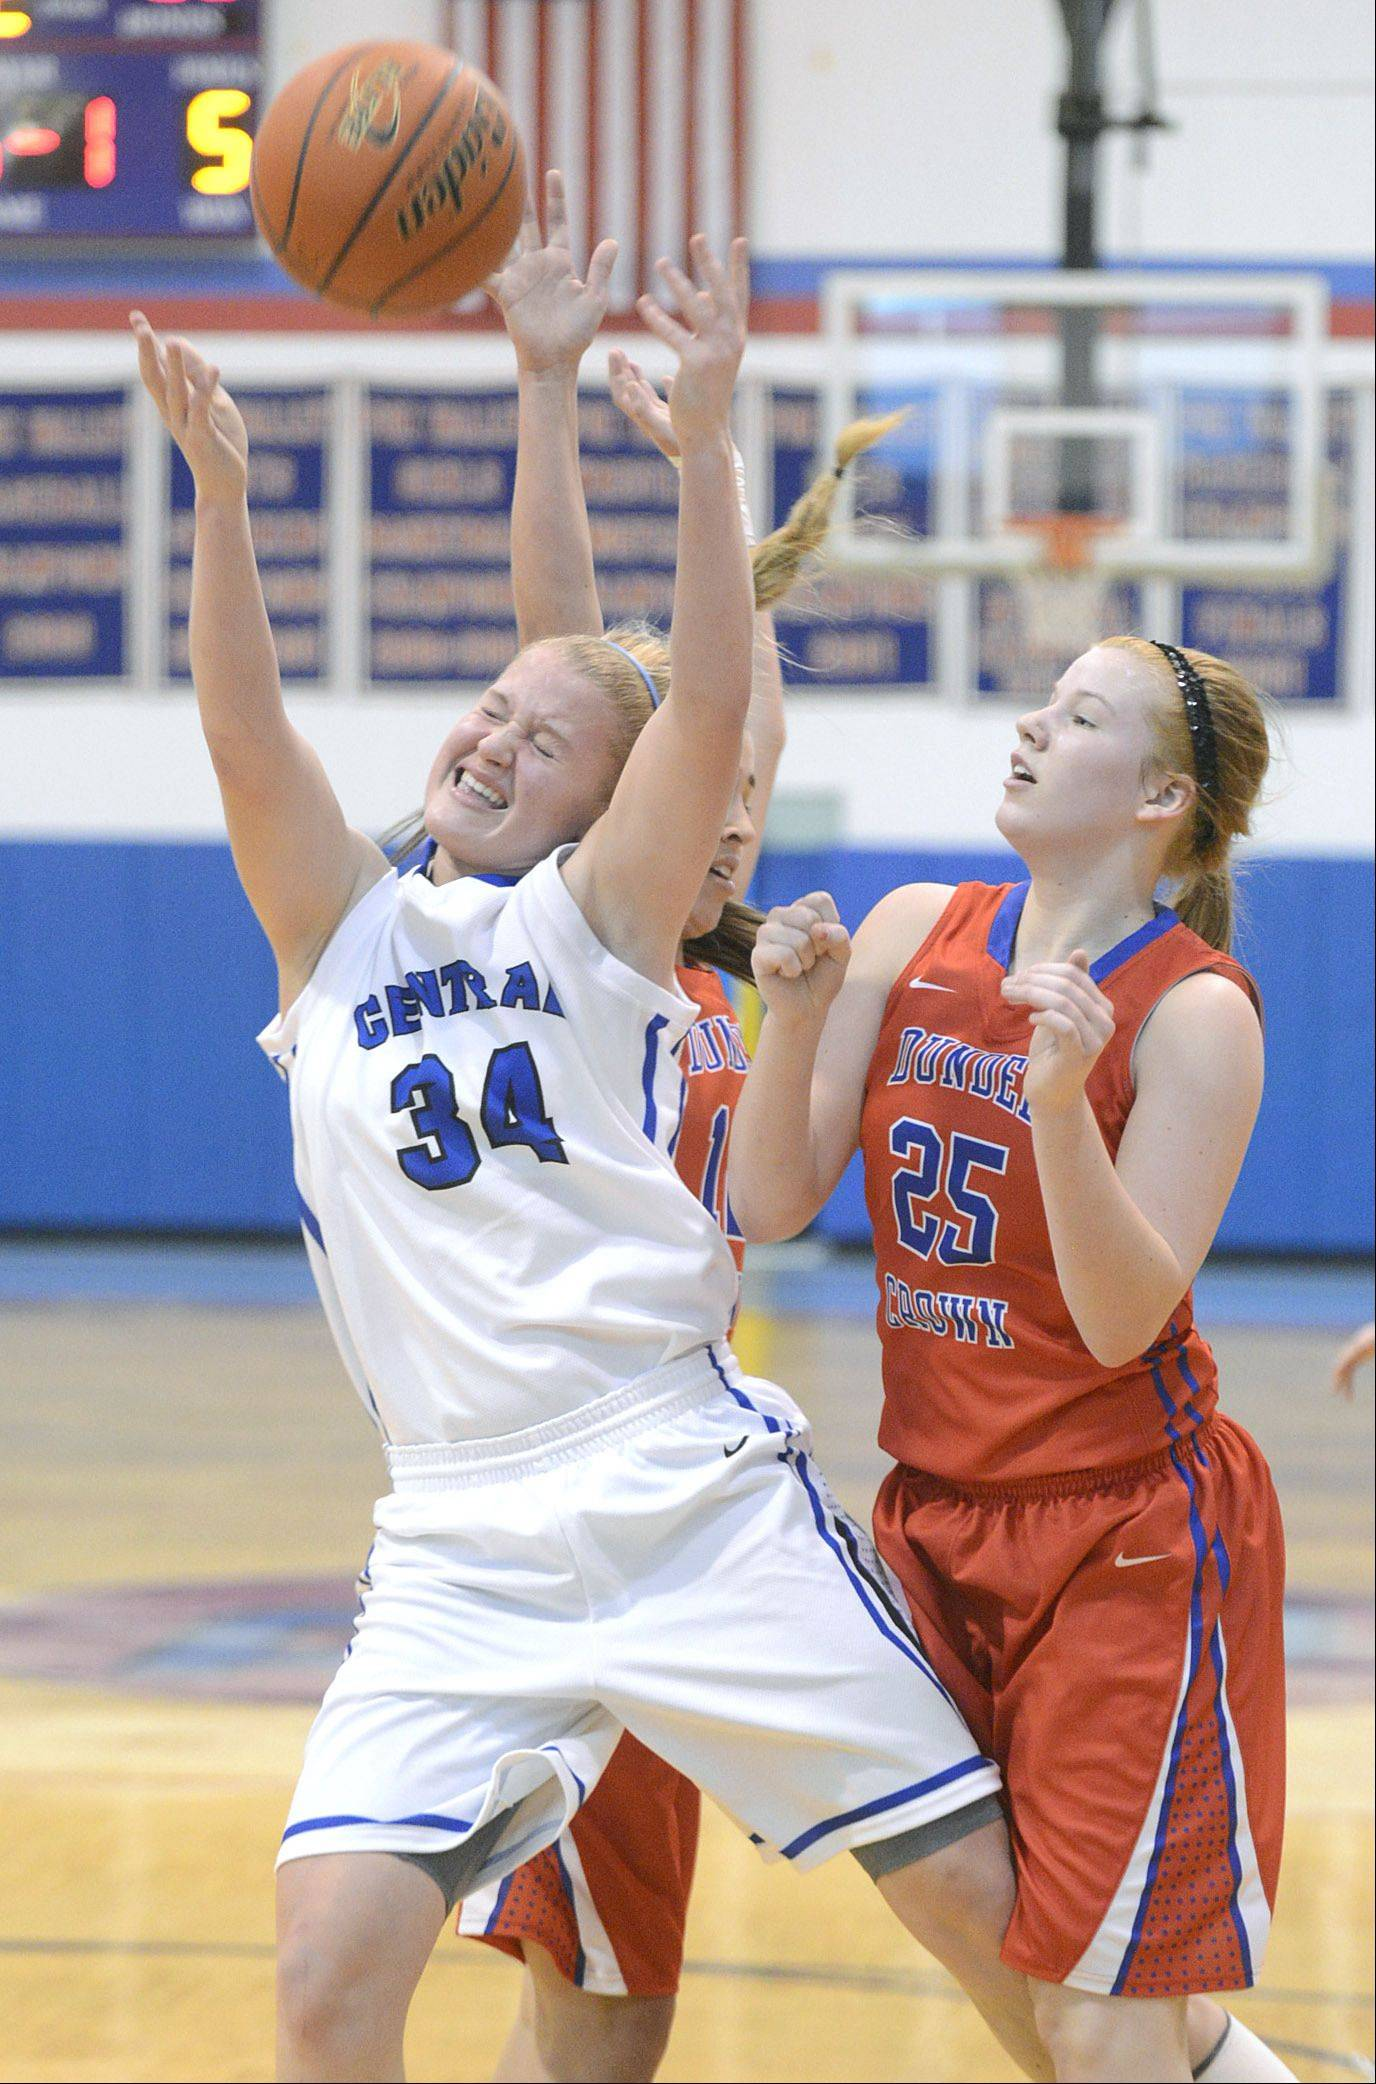 Burlington Central's Sam Pryor is fouled by Dundee-Crown's Lauren Lococo (behind) as she goes up for the hoop in the second quarter on Friday. Dundee-Crown's Allison Michalski on right.